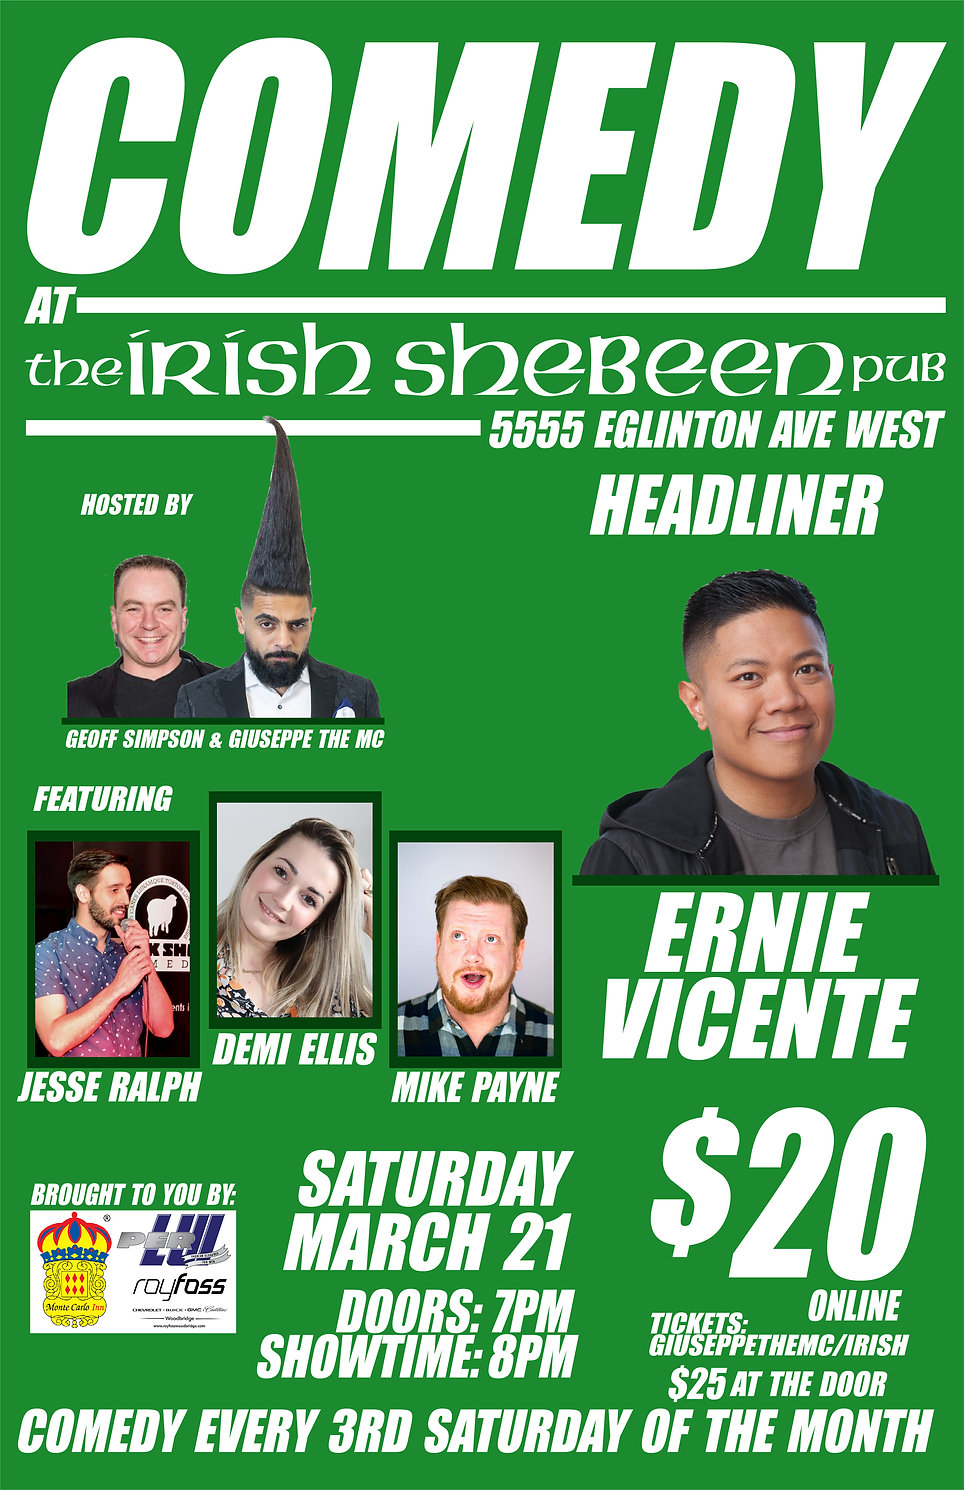 IRISH SHABEEN COMEDY MARCH 11 X 17 NEWES